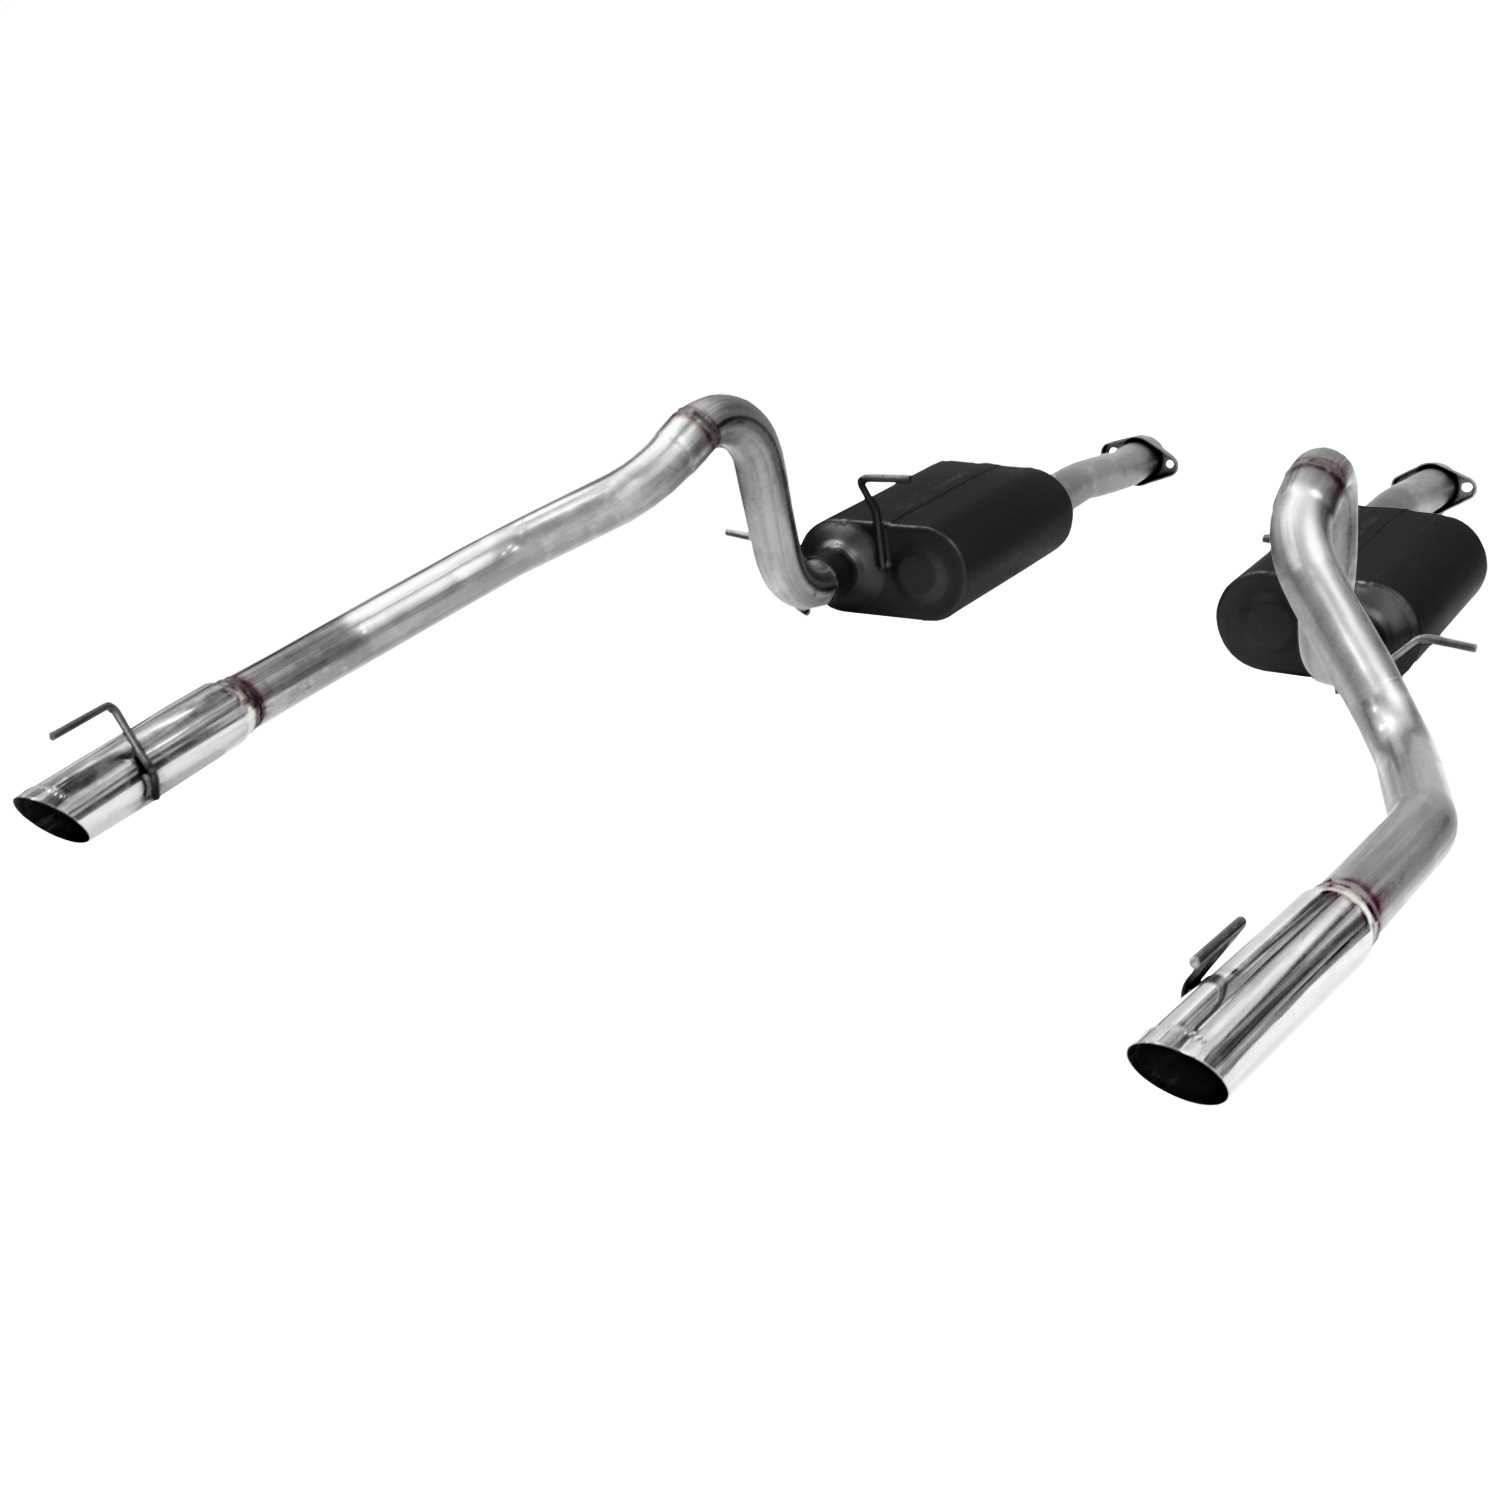 817312 Flowmaster American Thunder Cat Back Exhaust System